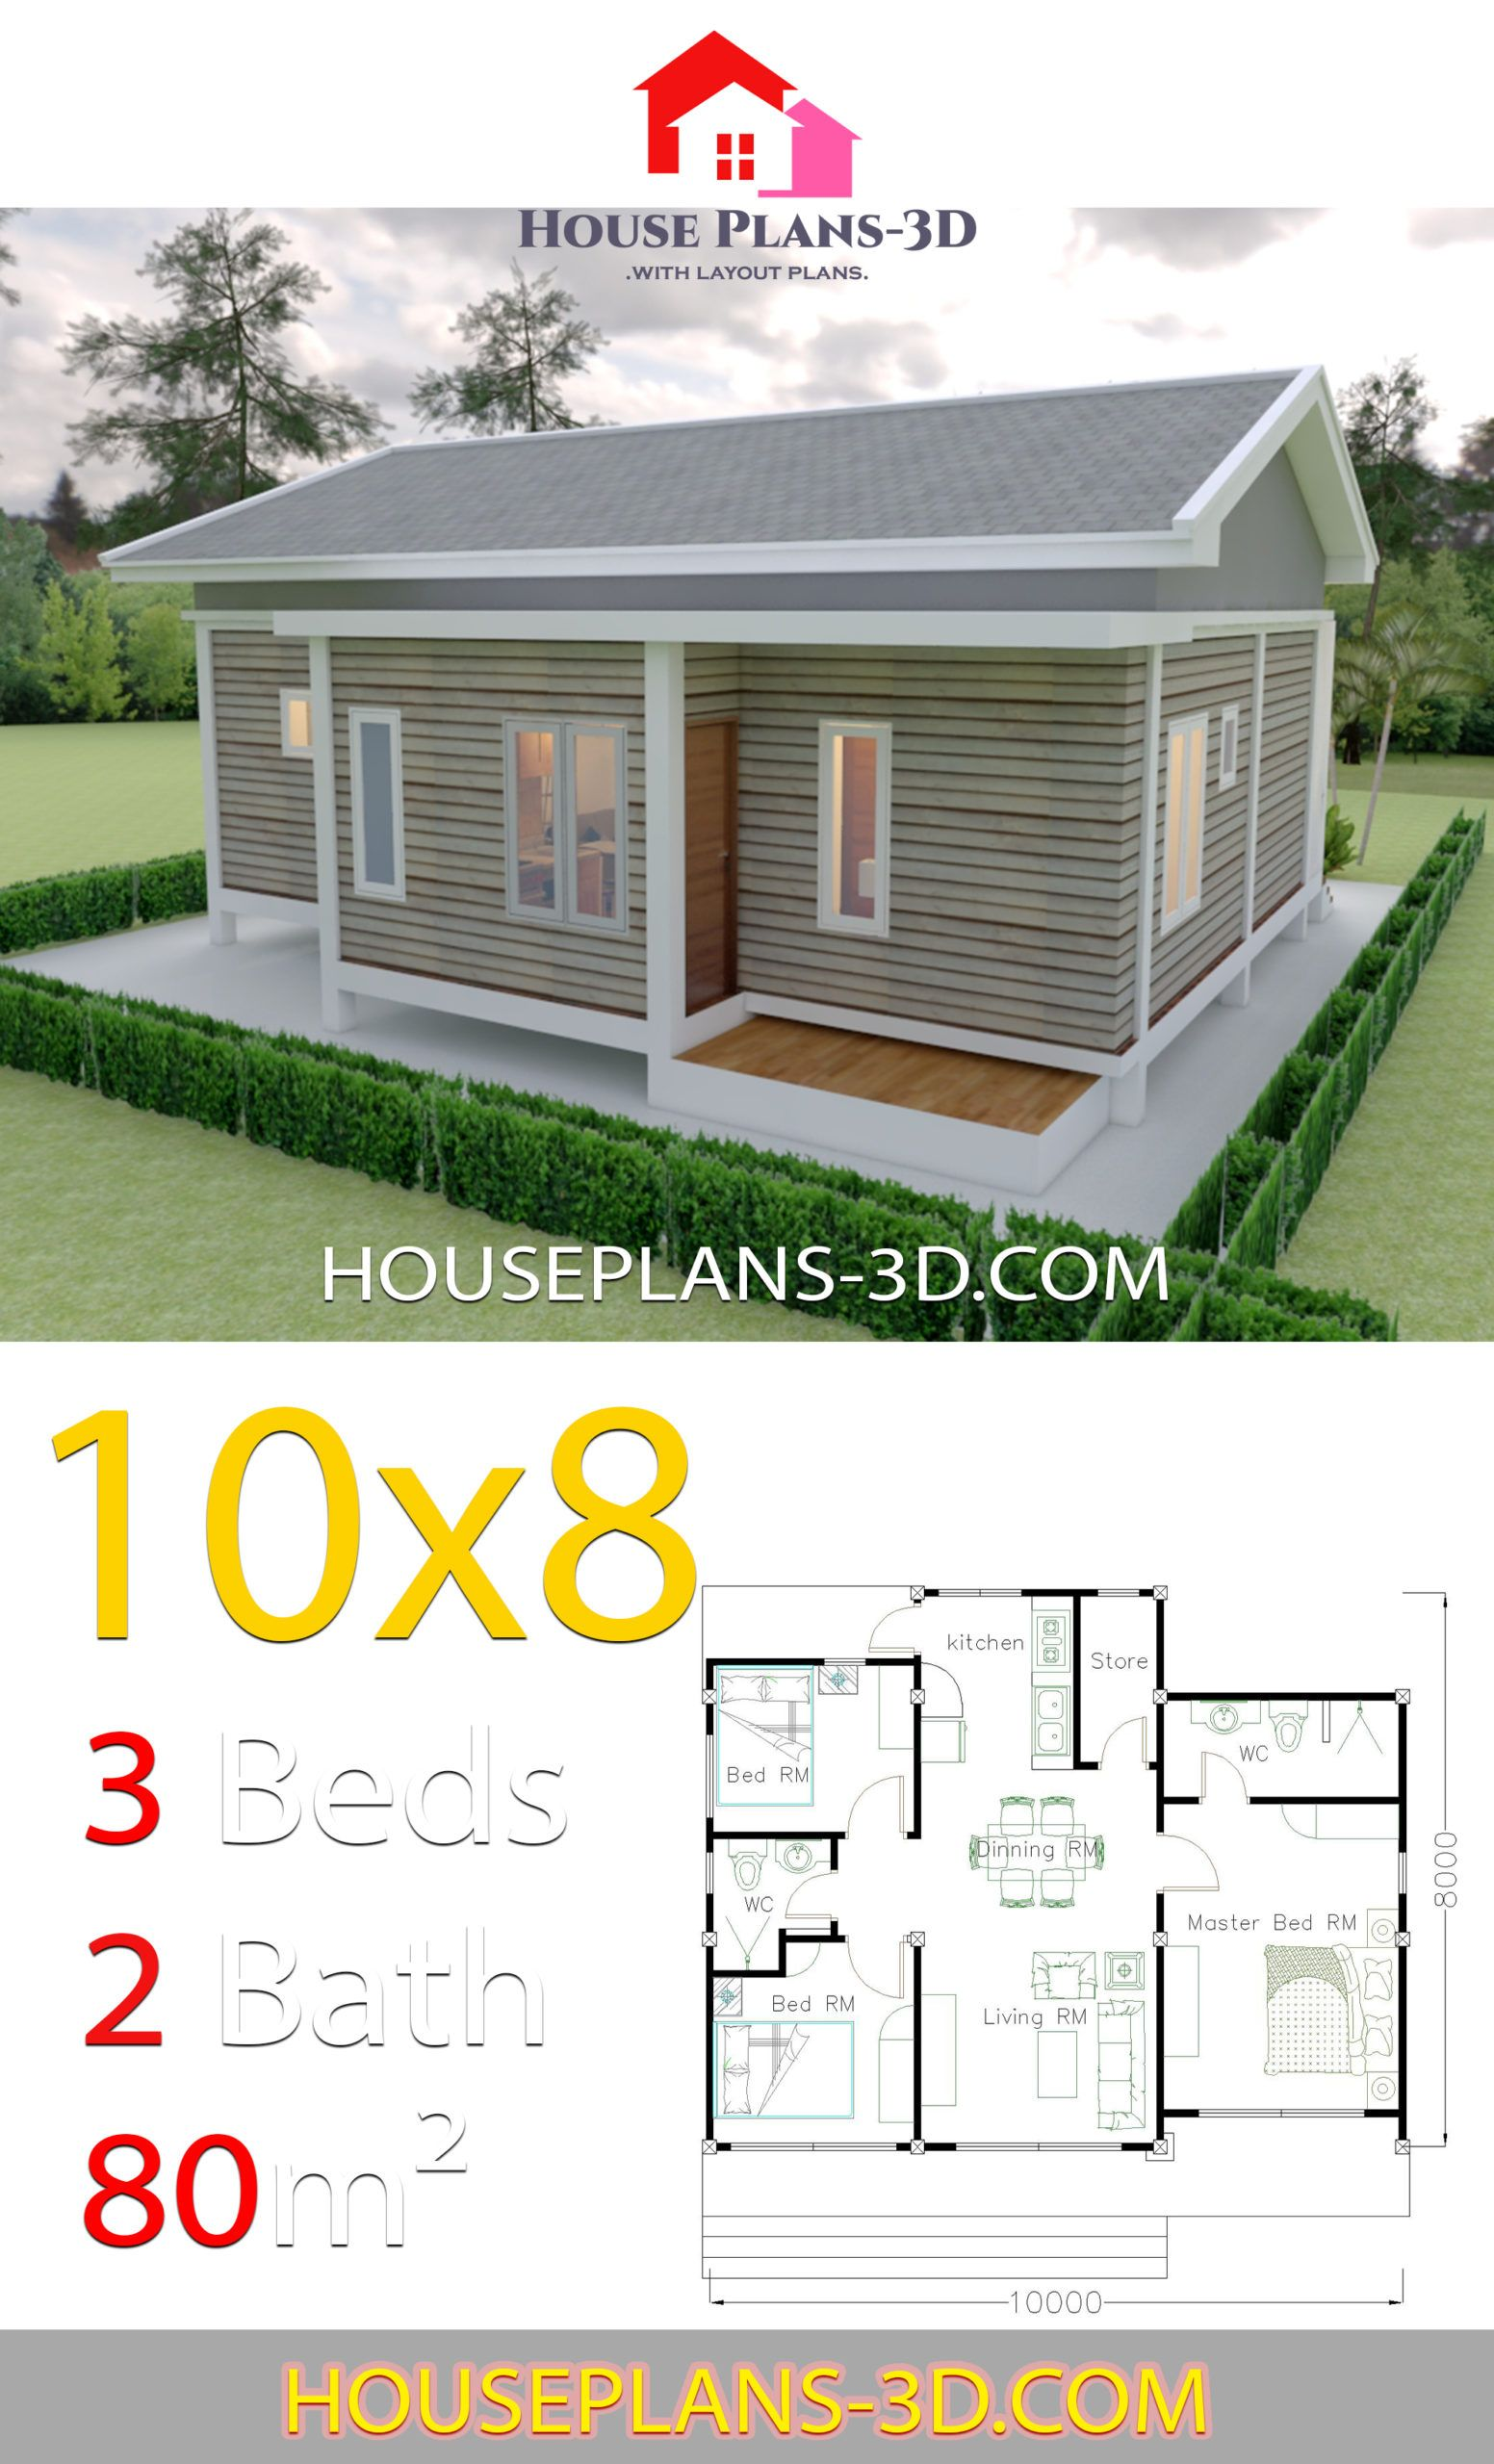 House Plans 10x8 With 3 Bedrooms Gable Roof House Plans 3d Gable Roof House Dream House Plans Simple House Plans